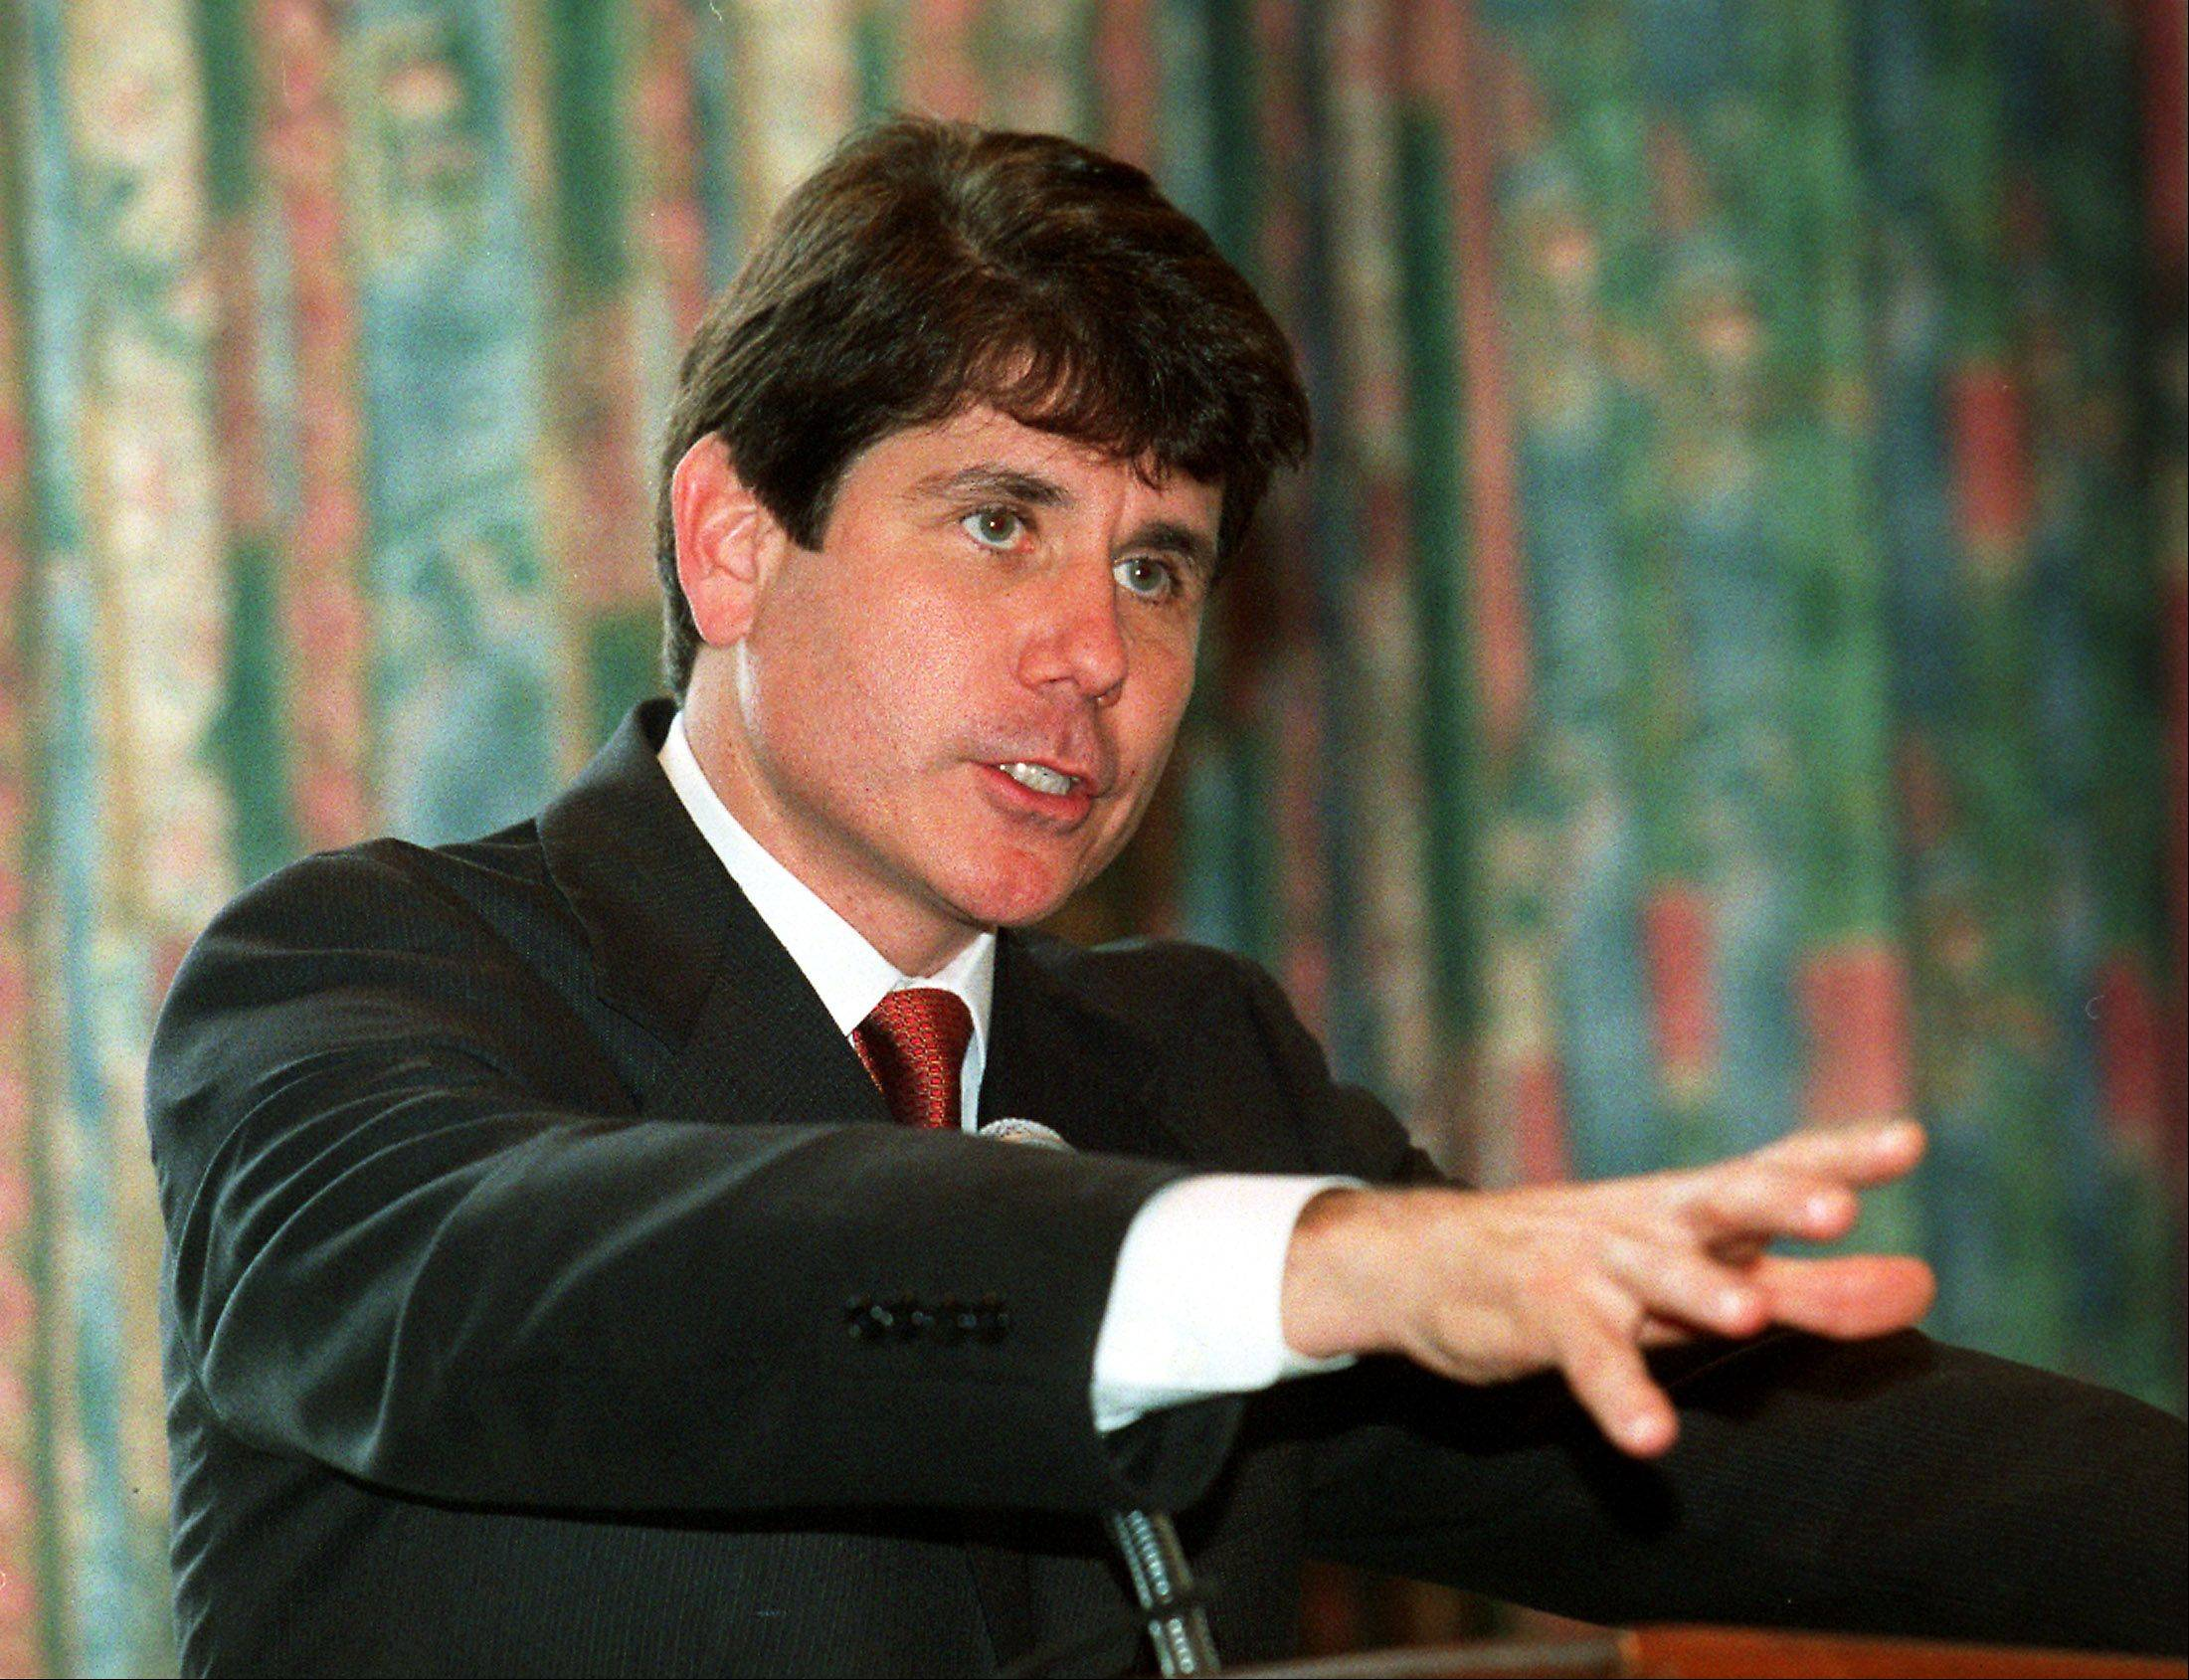 Prosecutors have filed a response to Rod Blagojevich's corruption conviction appeal.